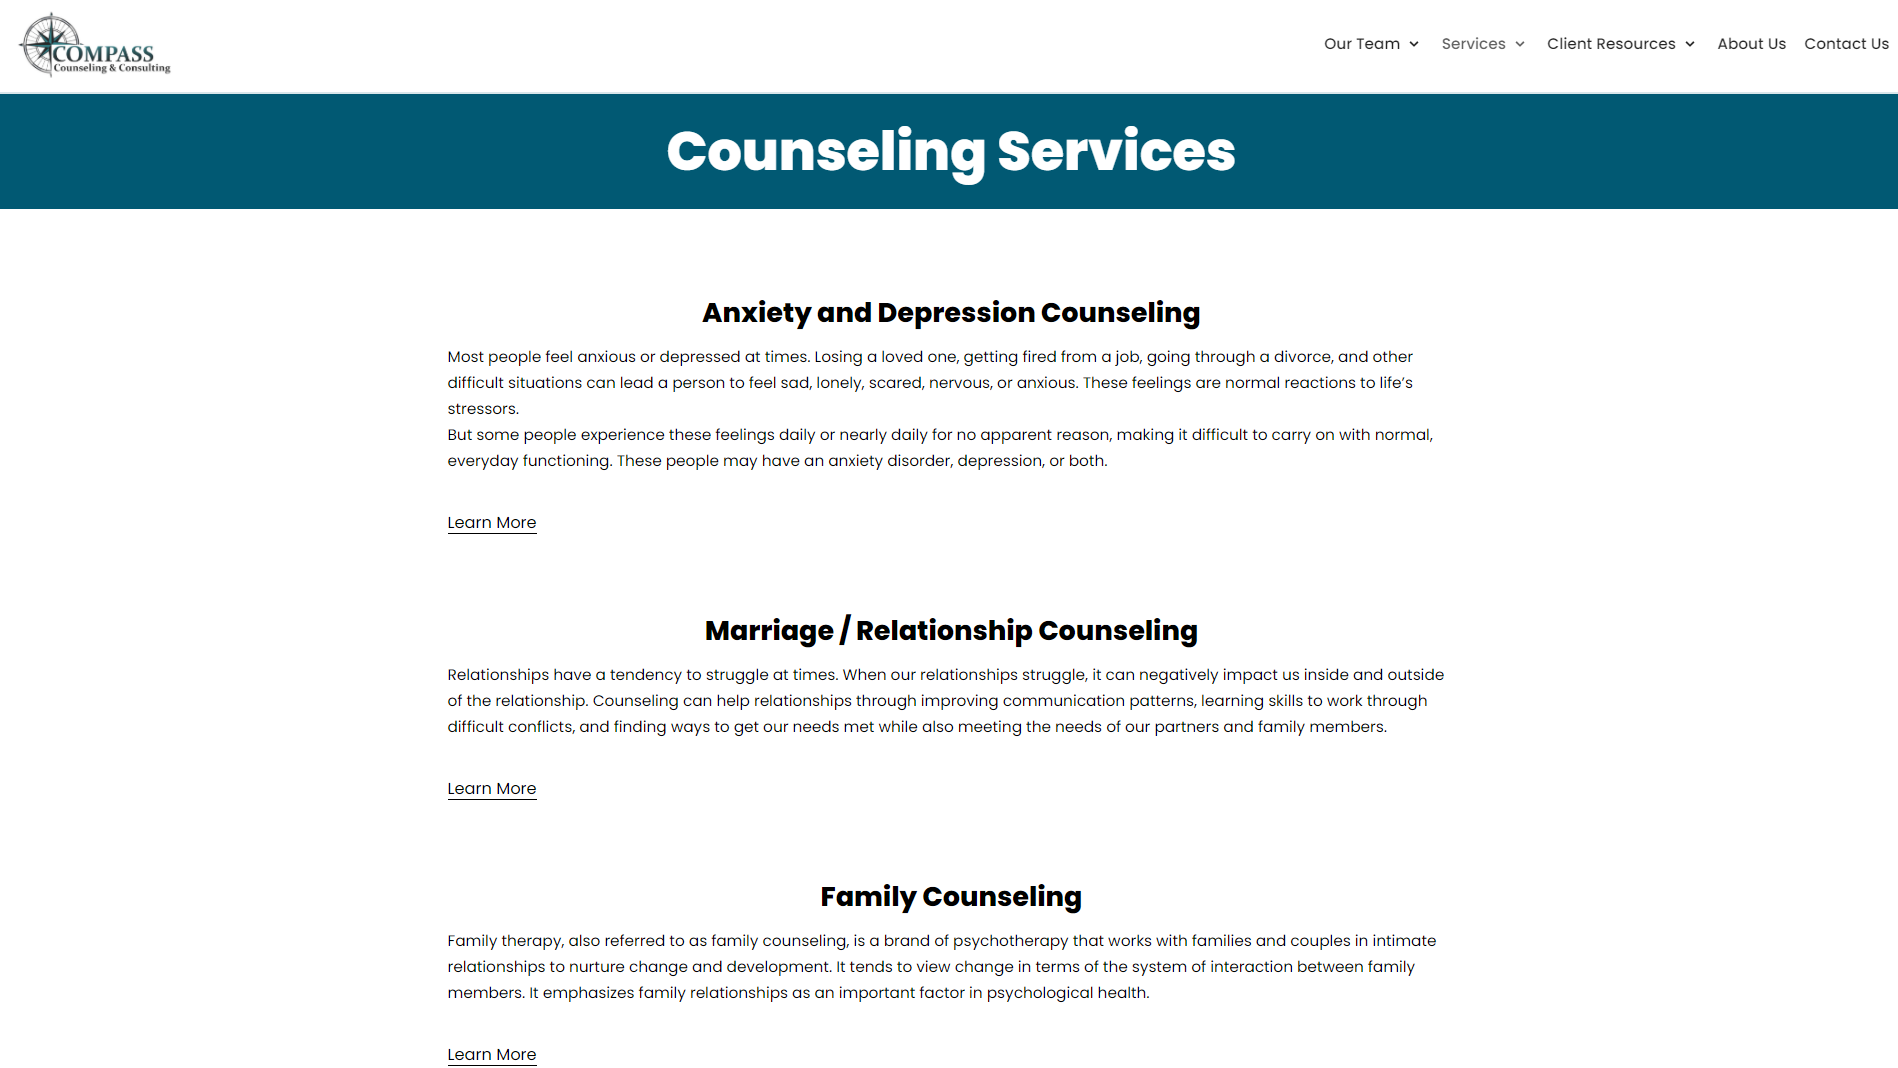 New Counseling Services Page Design for Compass Counseling and Consulting